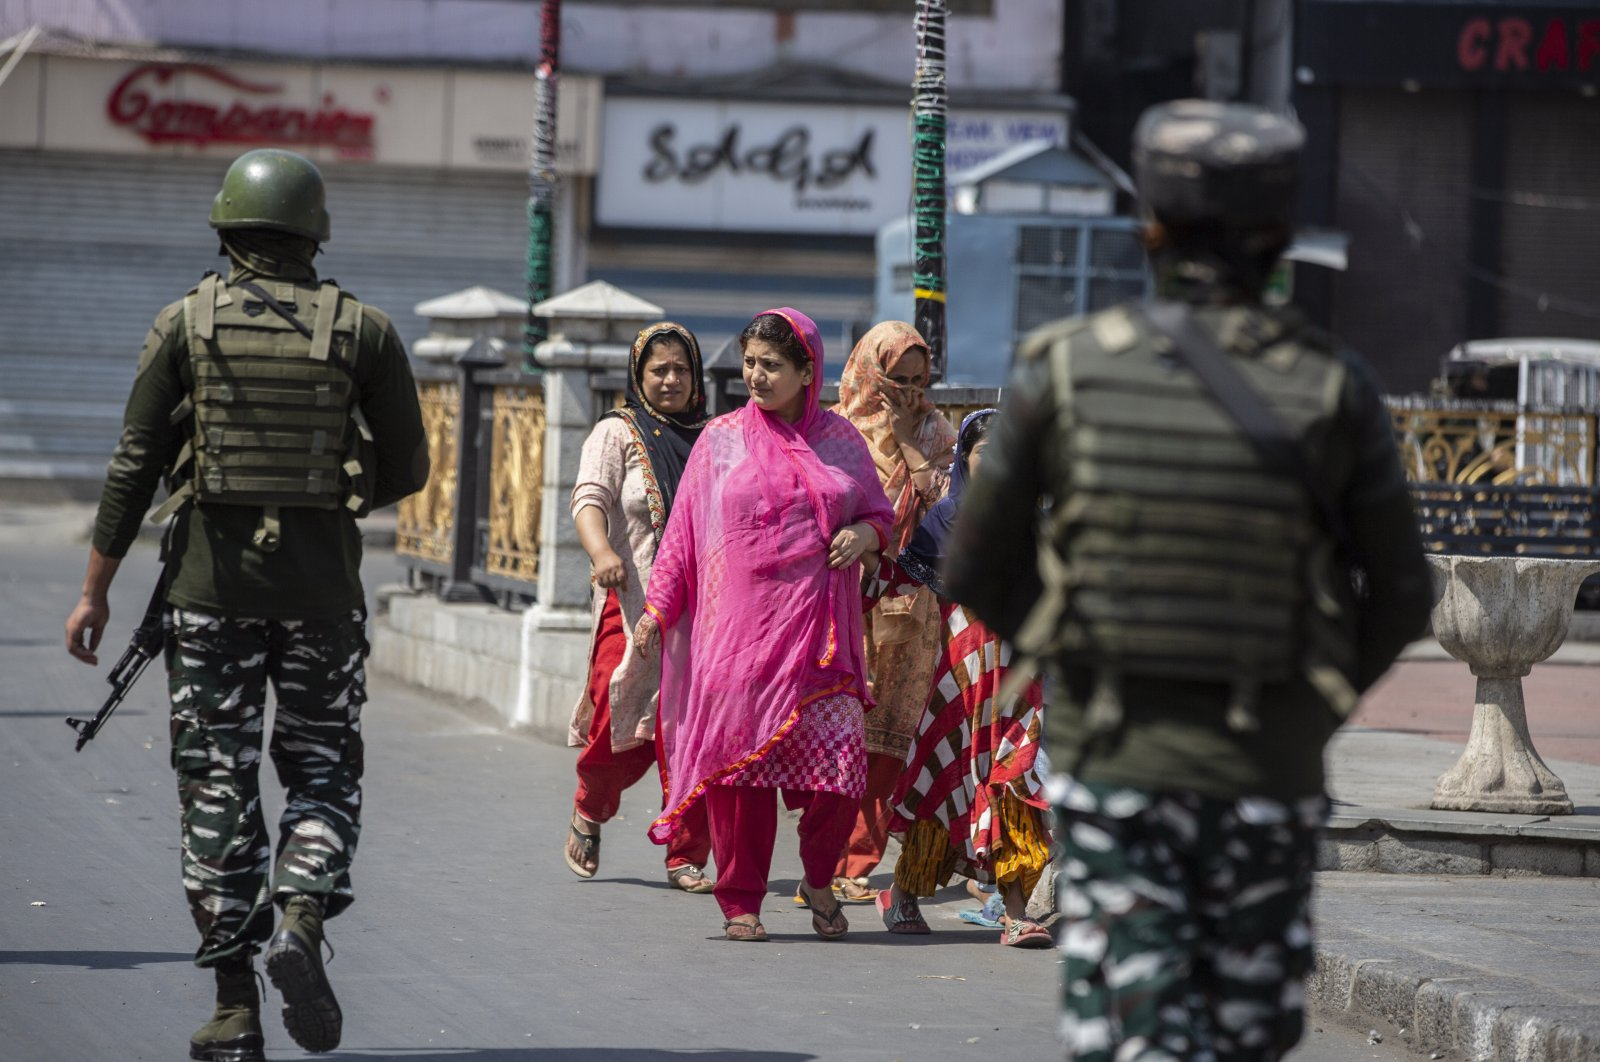 Indian paramilitary soldiers patrol as civilians walk in a deserted market area in Srinagar, Indian-controlled Kashmir, Sept. 2, 2021. (AP Photo)